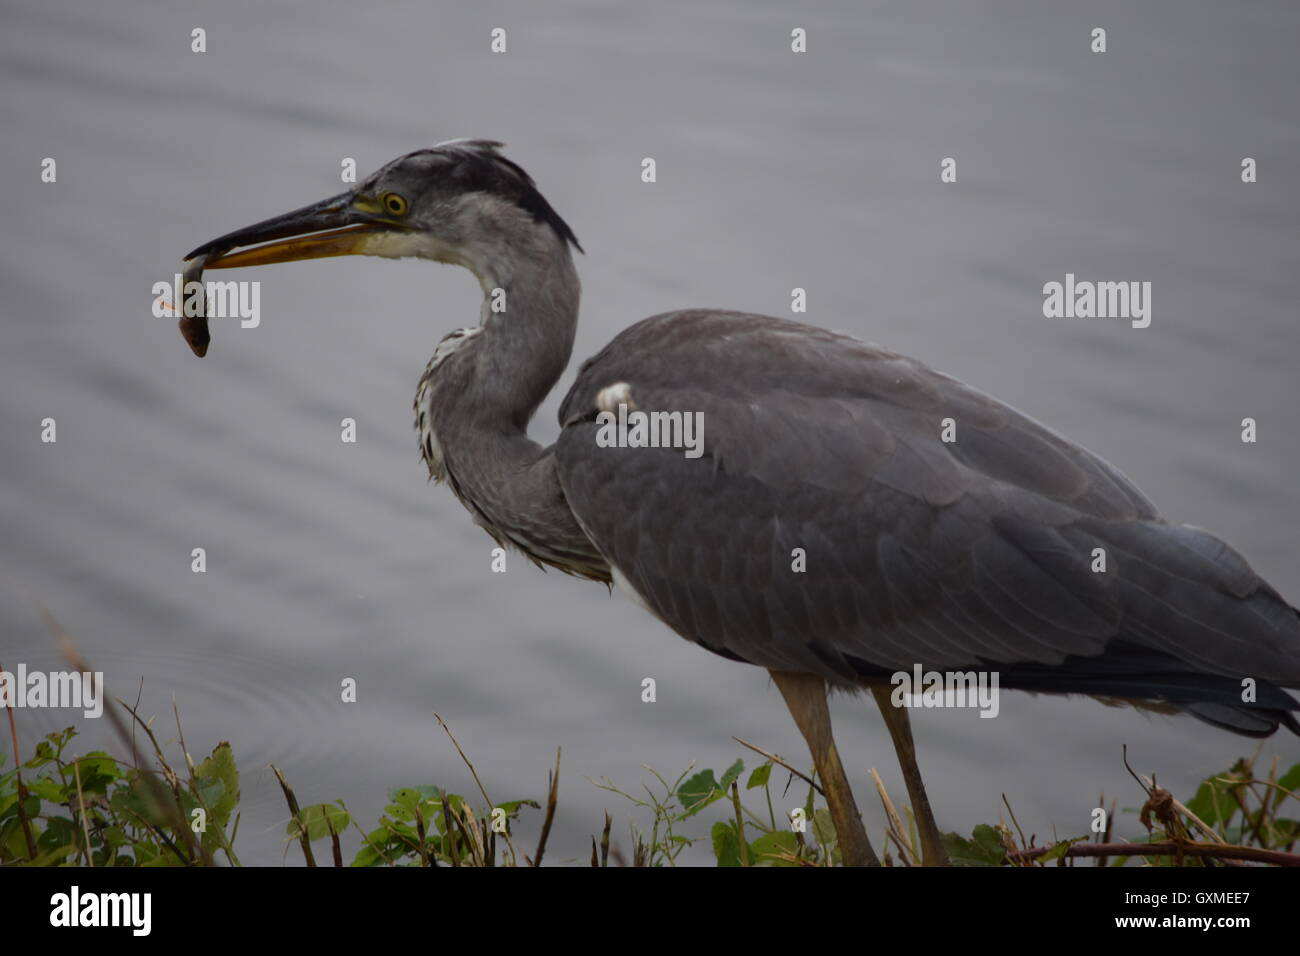 Heron has just caught a fish - Stock Image